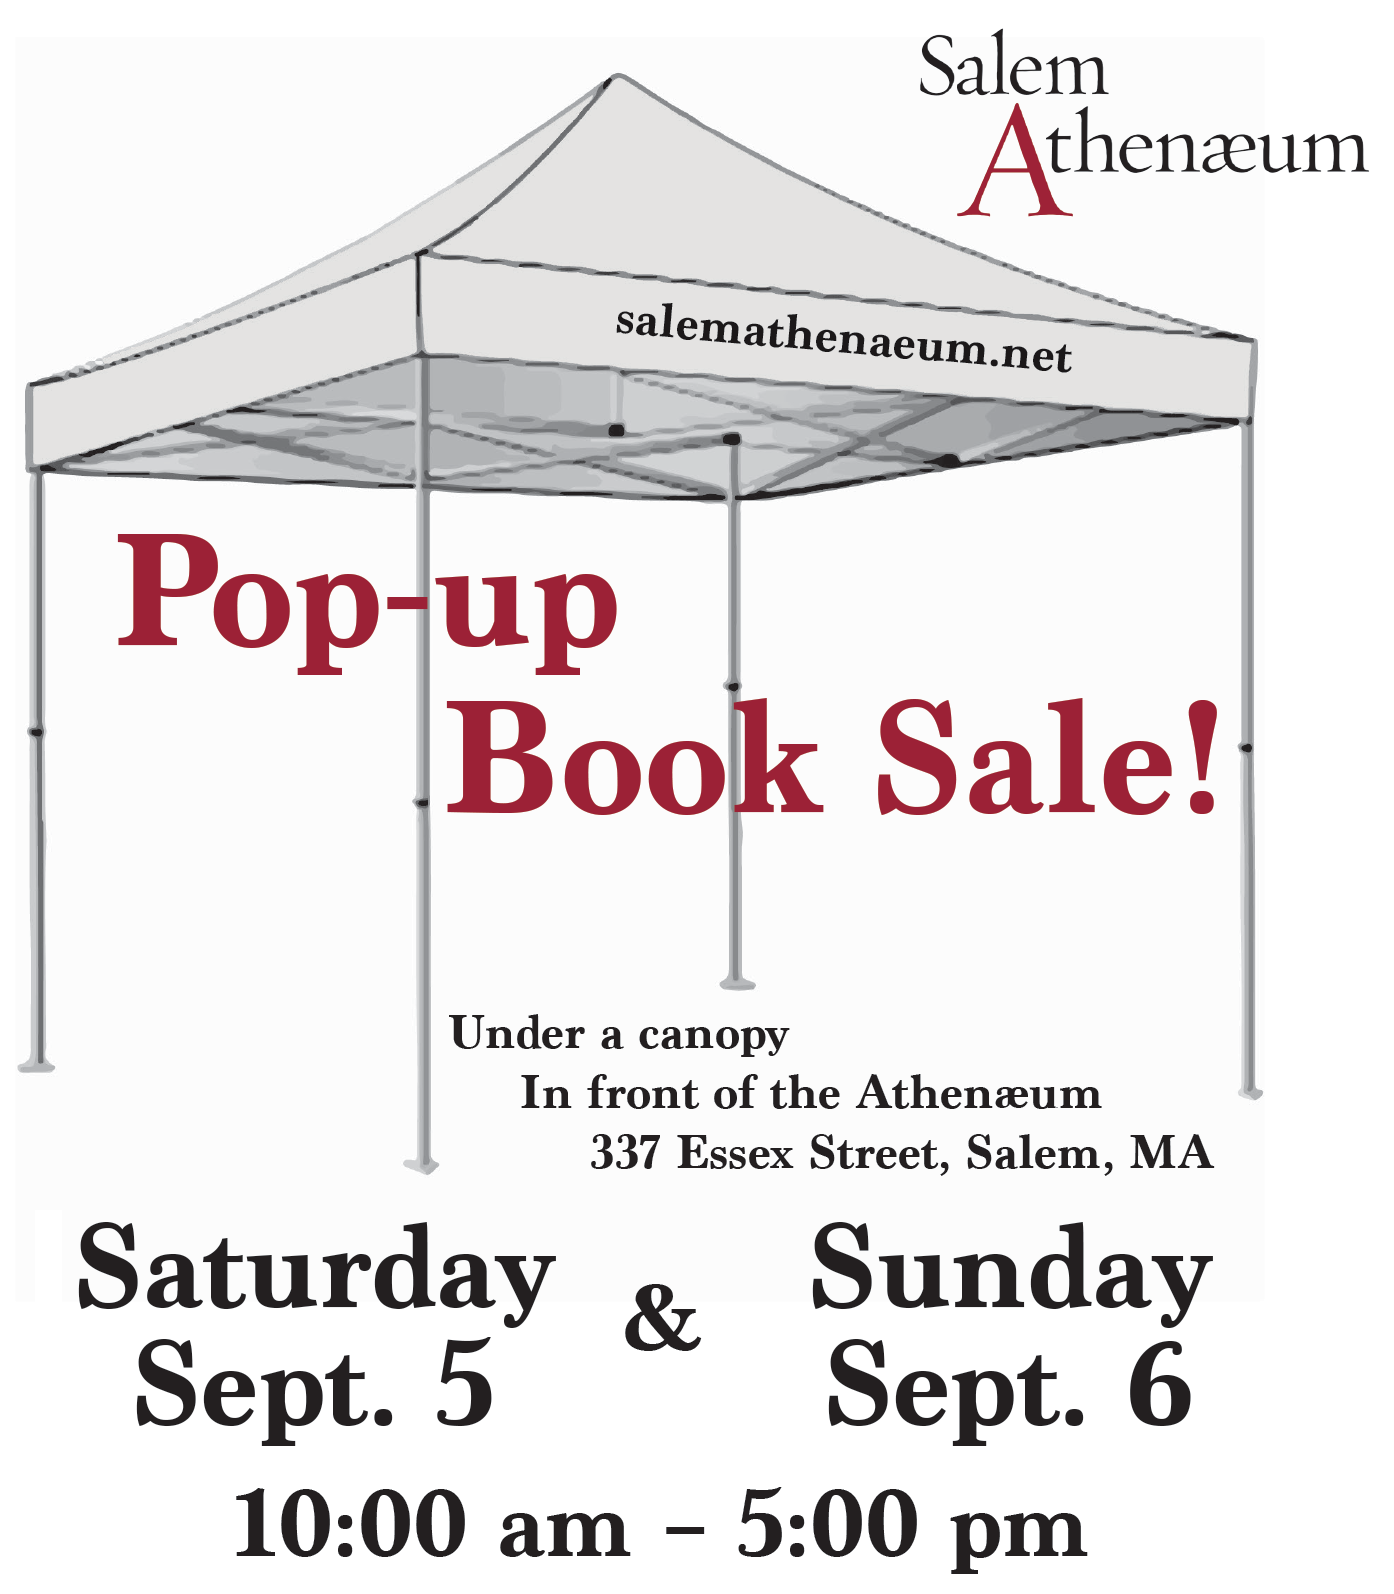 Pop-up Book Sale! @ Salem Athenaeum